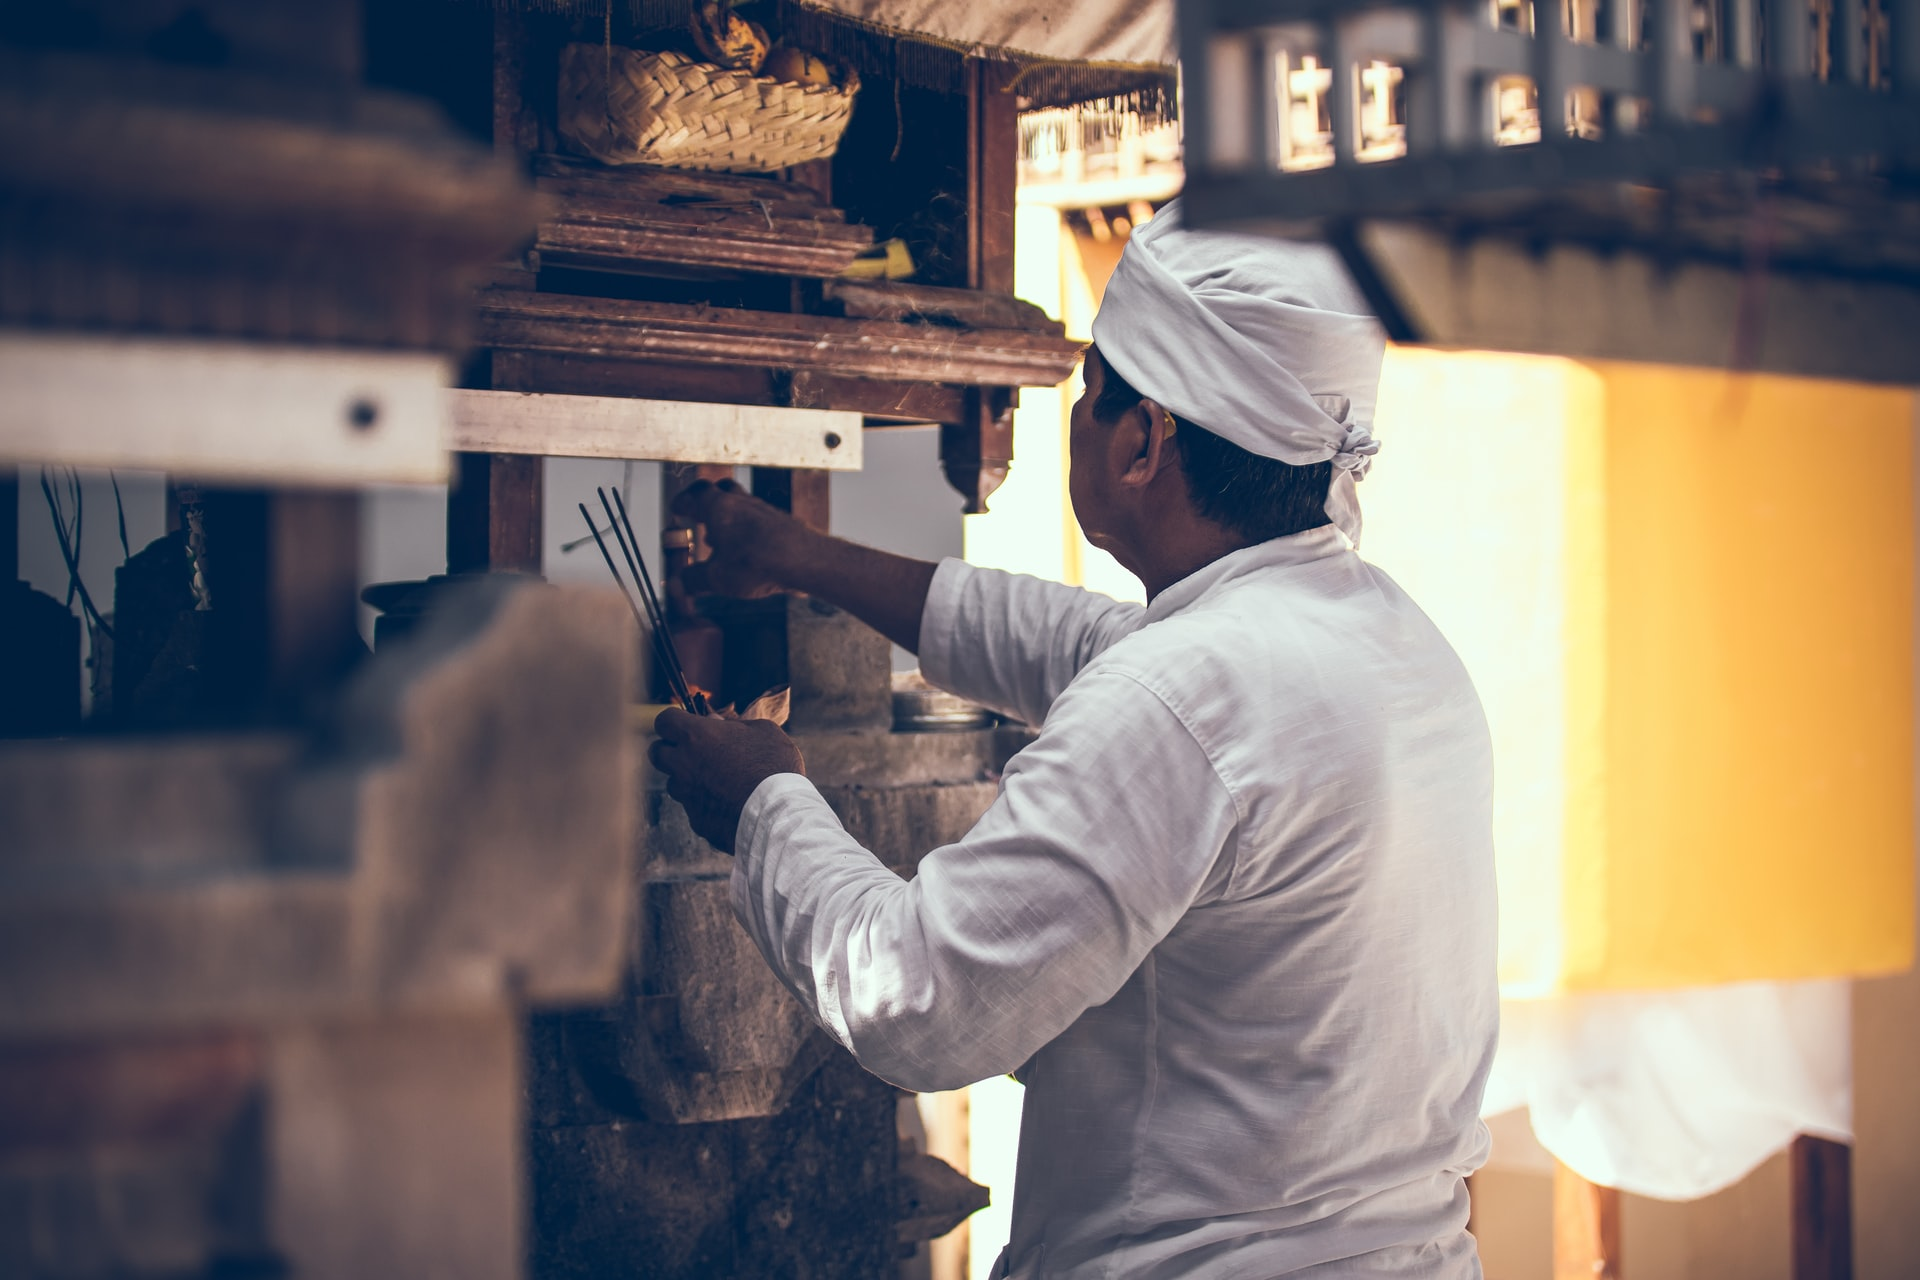 man wearing a chef outfit working in a restaurant